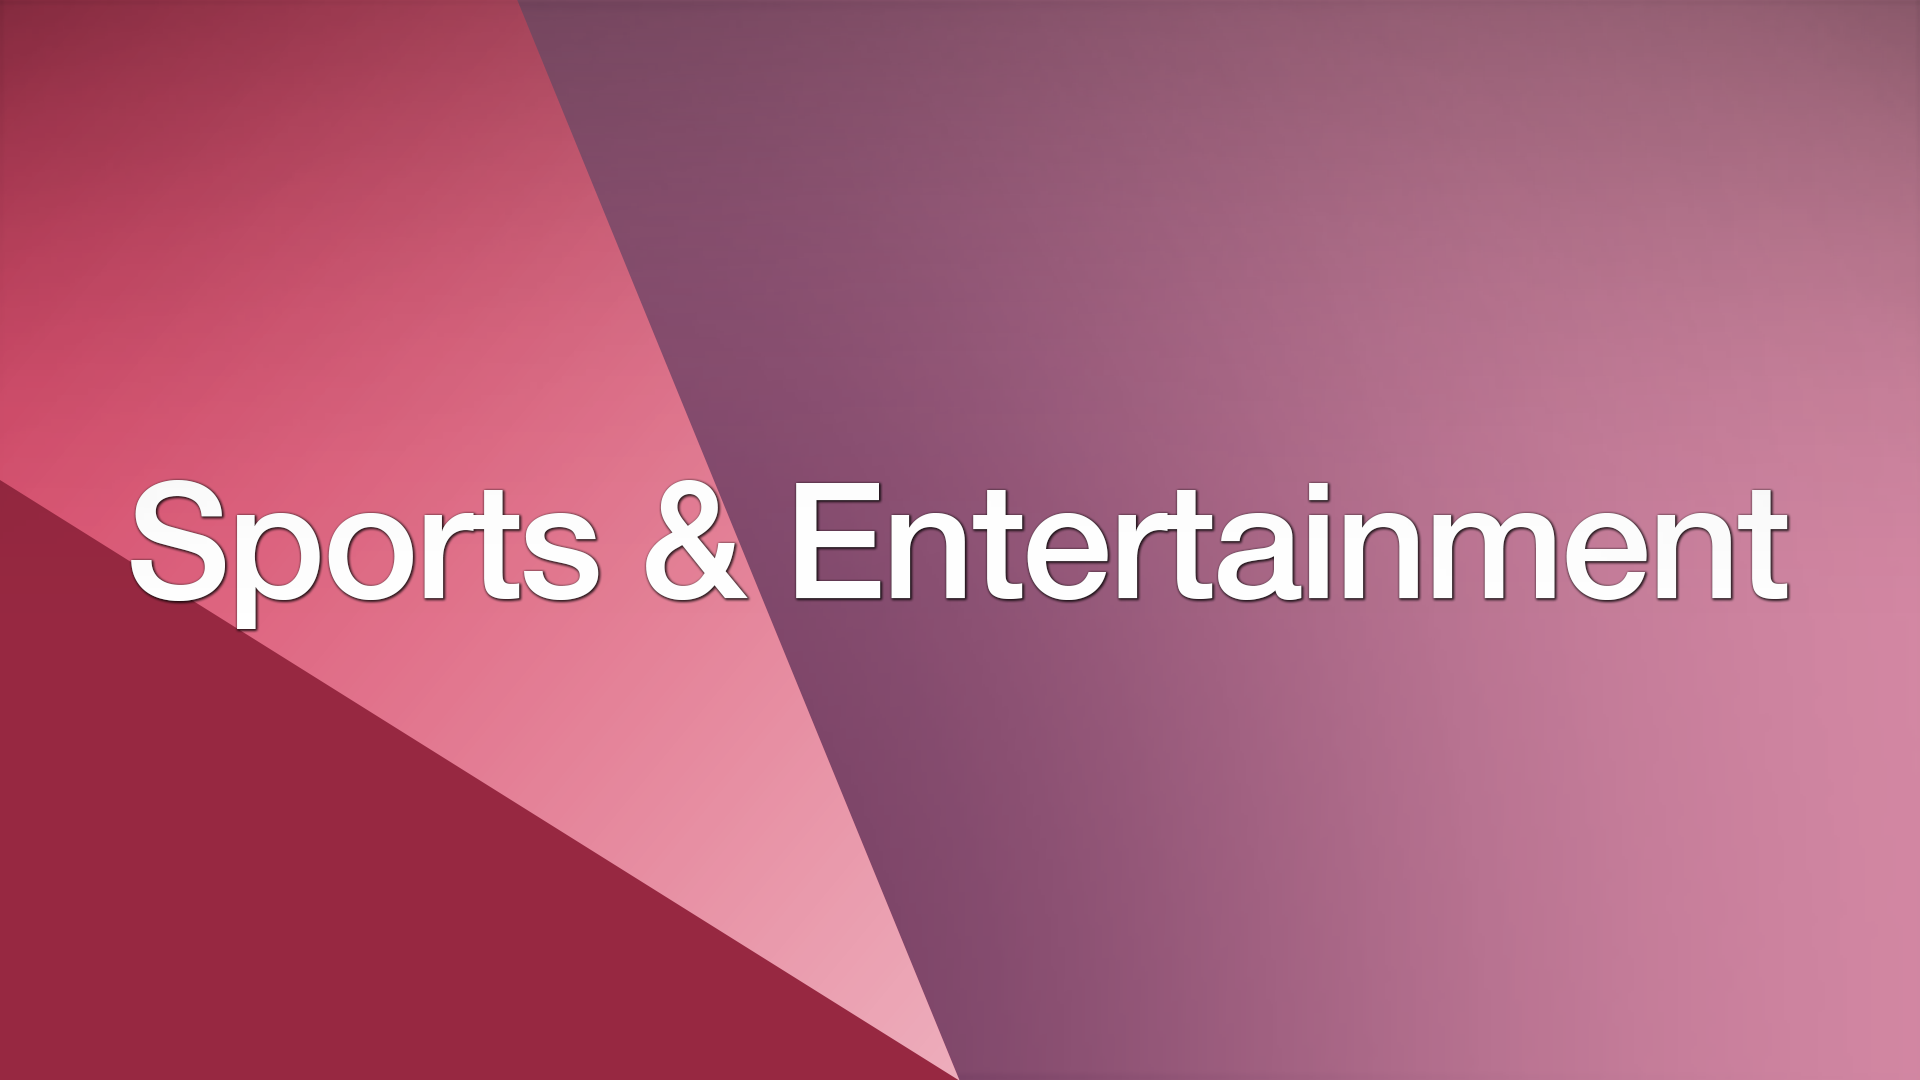 Rubrik-english - Sports & Entertainment